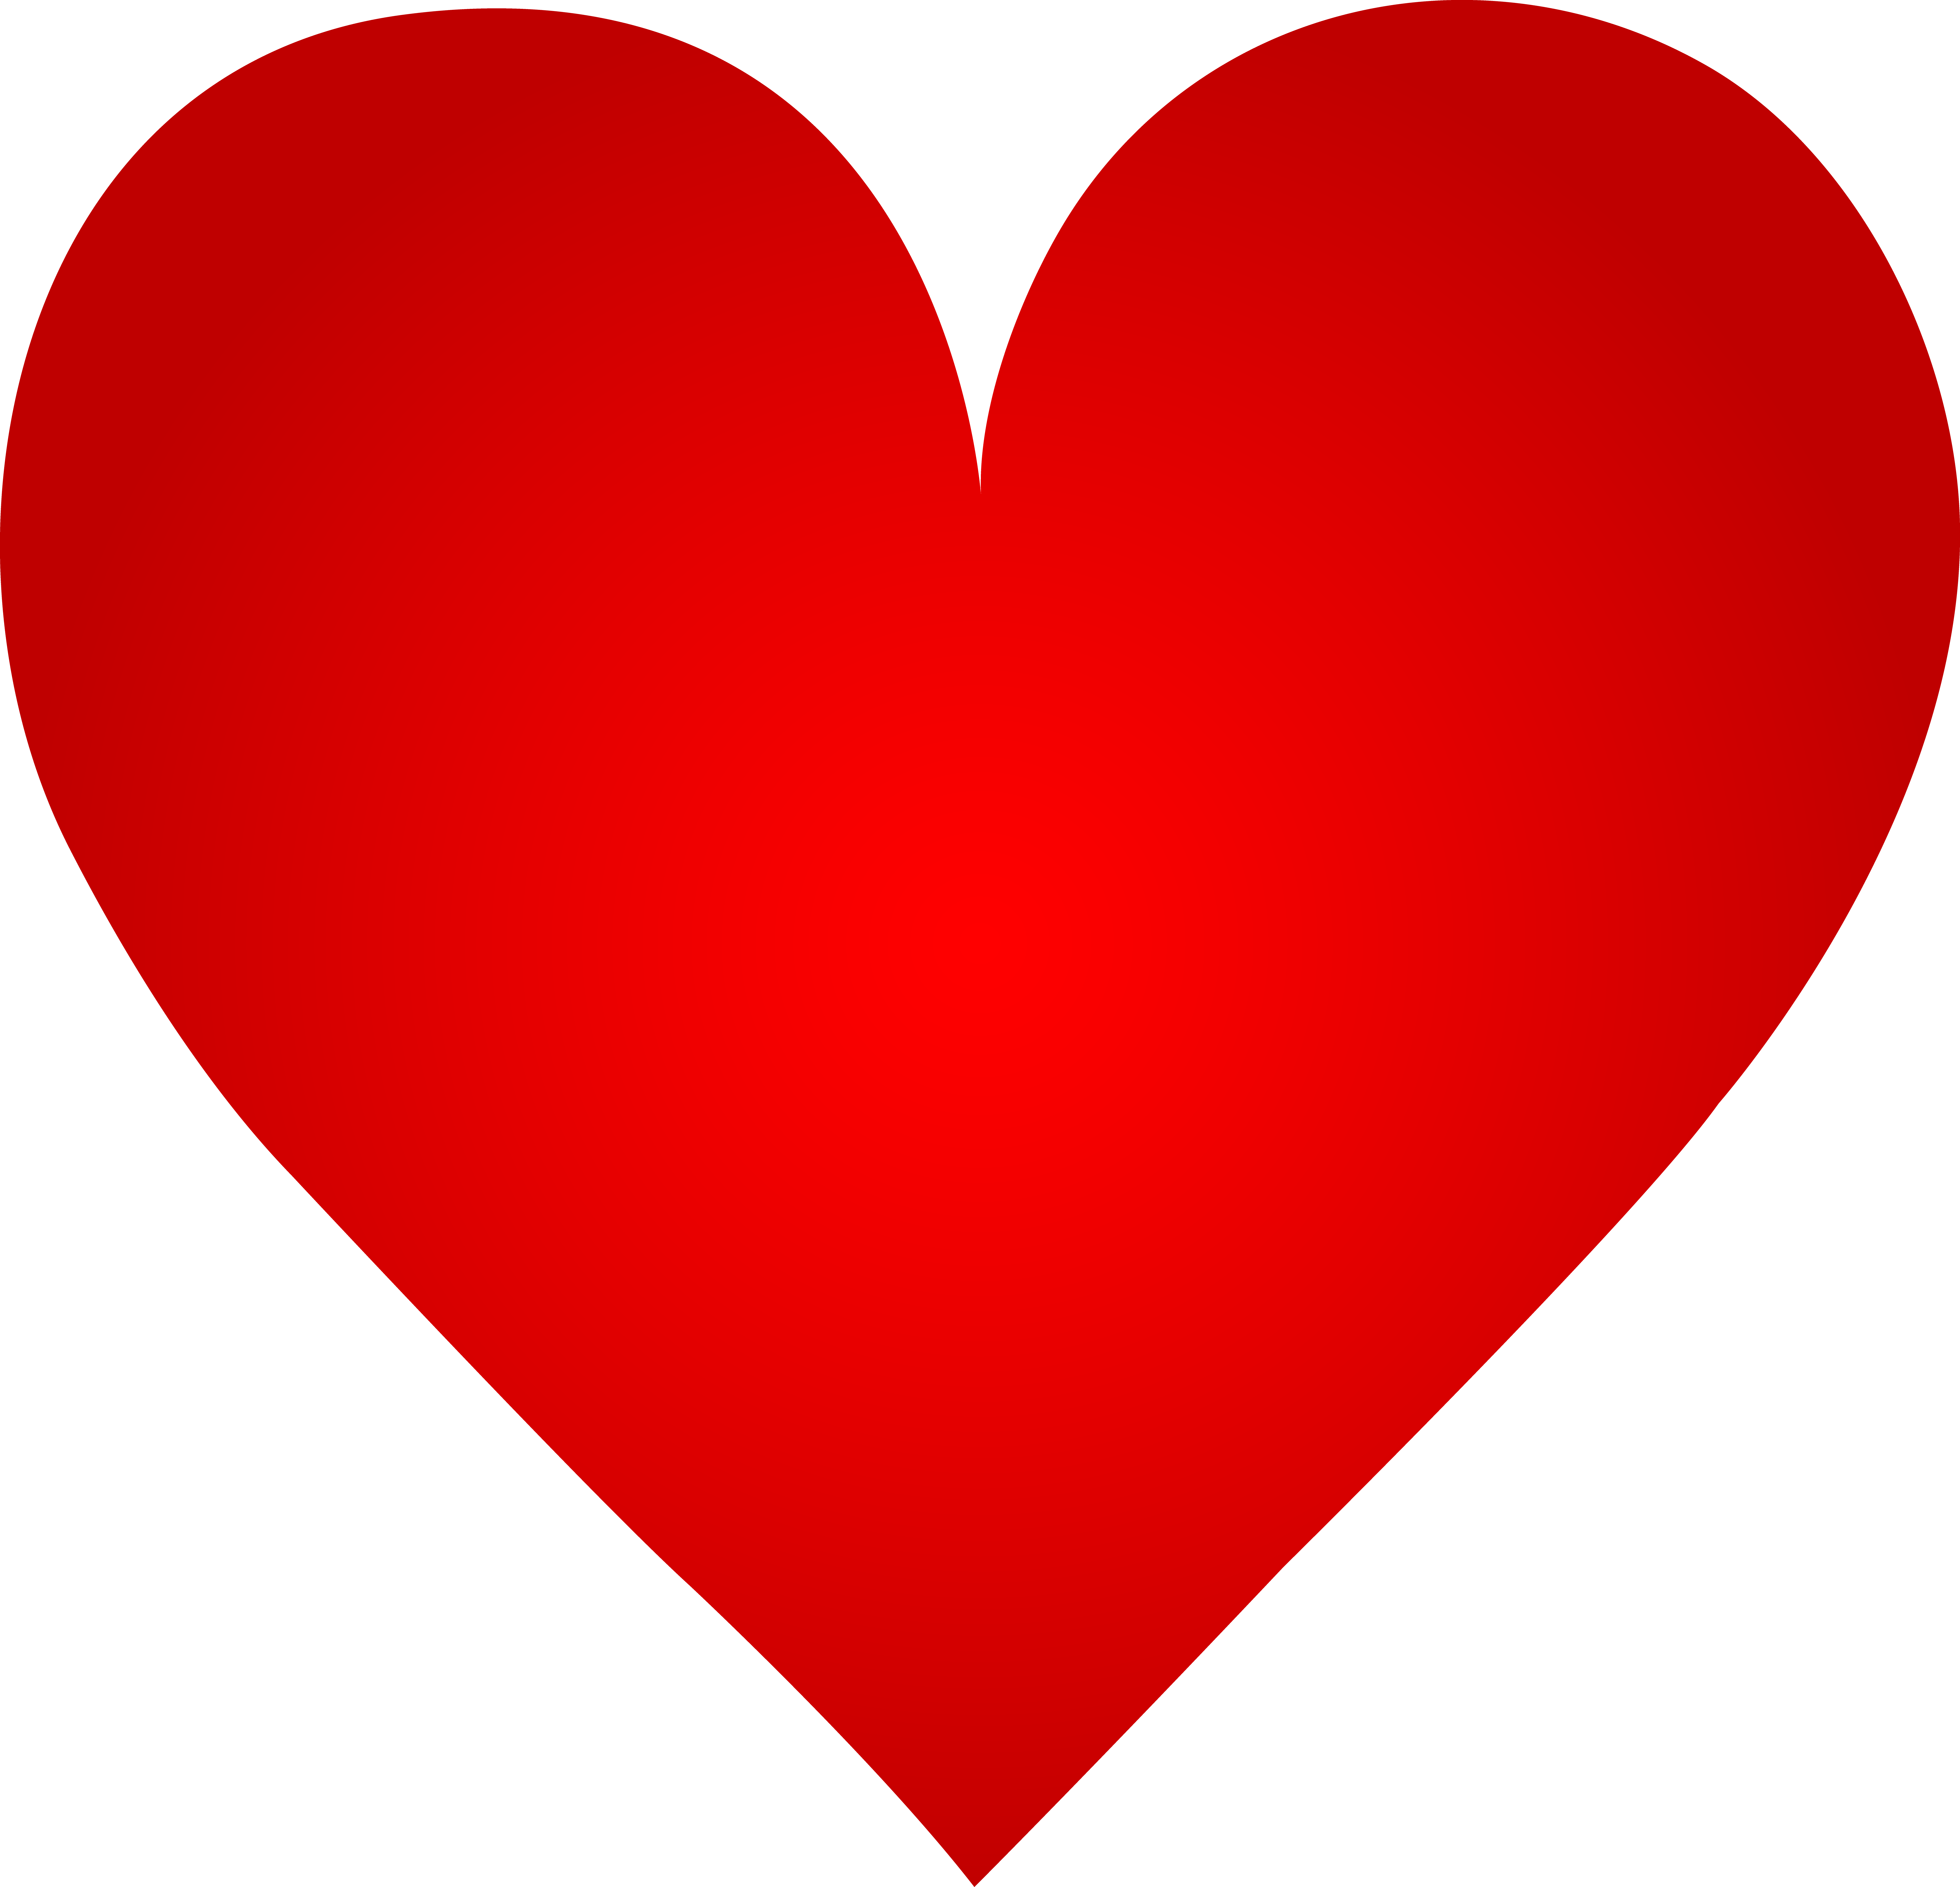 Triple heart clipart picture free library pictures of hearts | Bright Red Heart | Inspirational | Pinterest picture free library